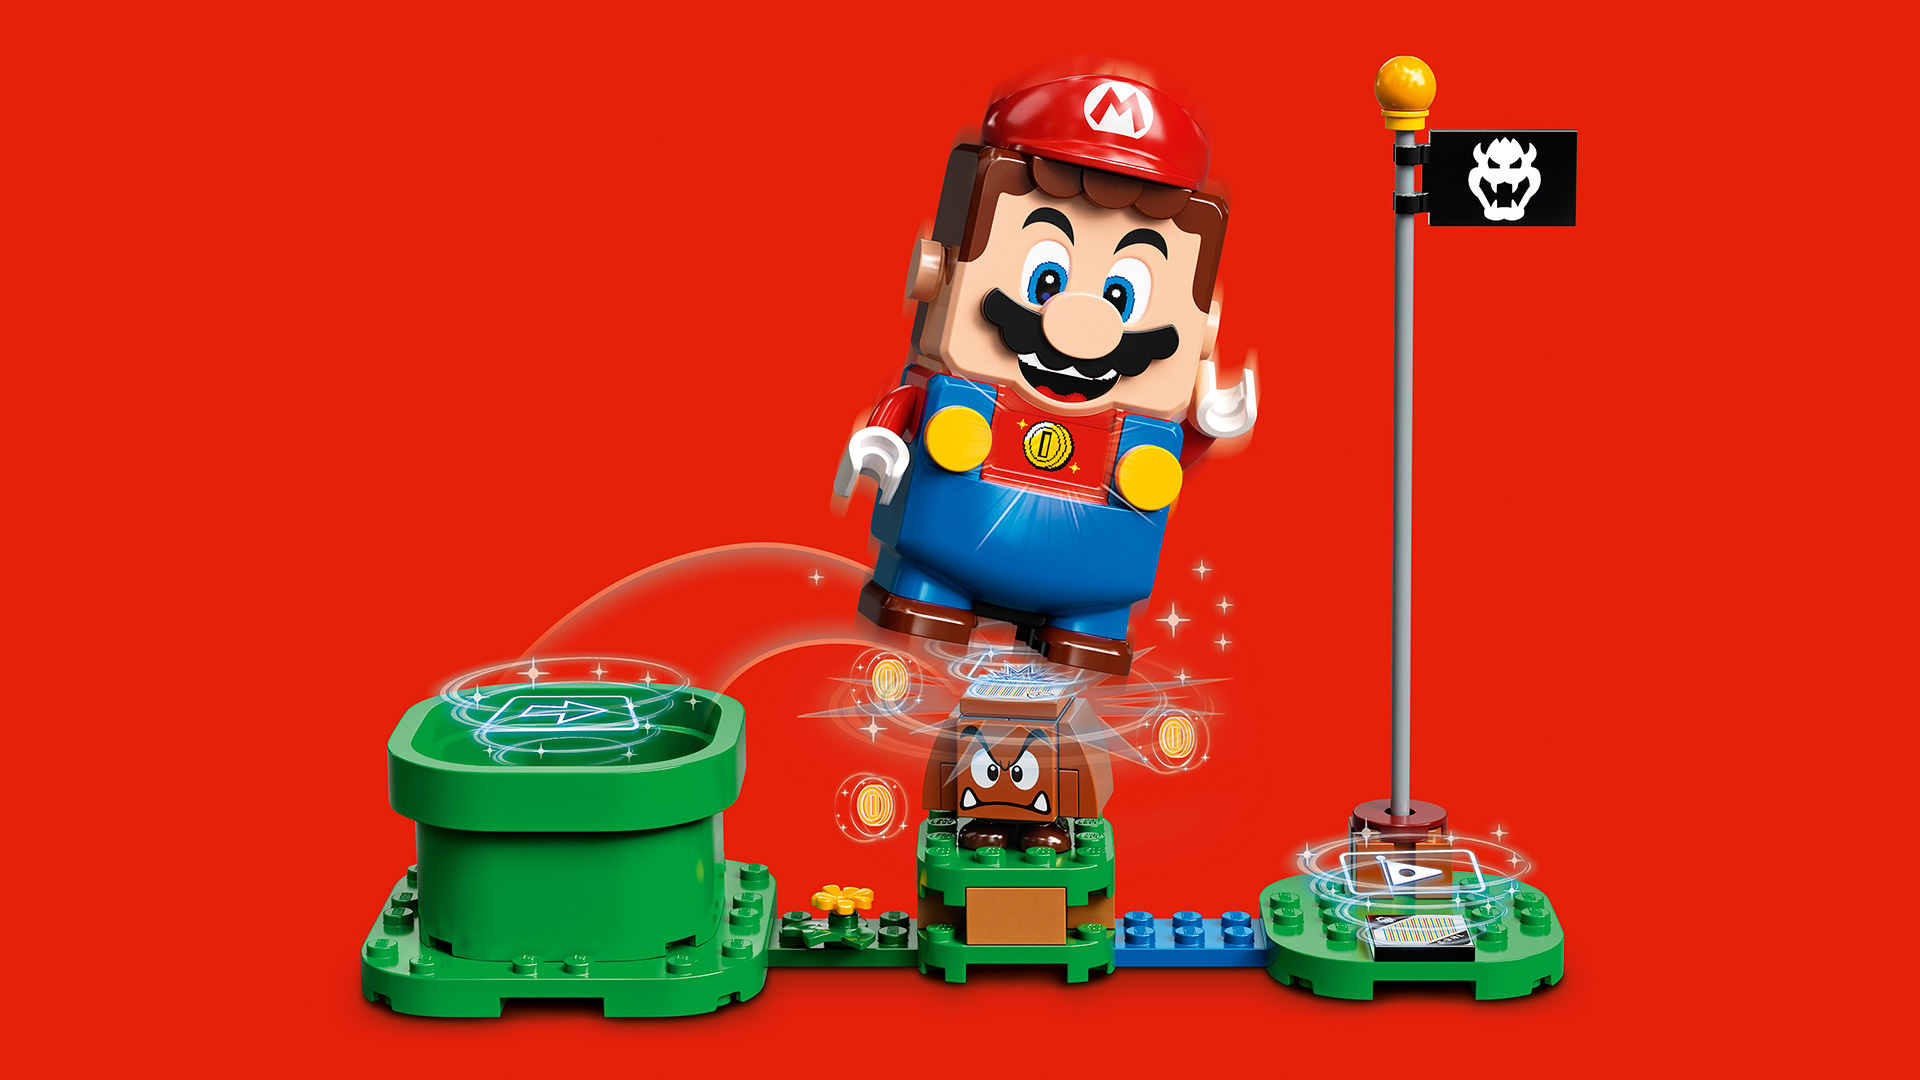 LEGO: Nintendo has 'a lot of very exciting IPs that we might do' screenshot